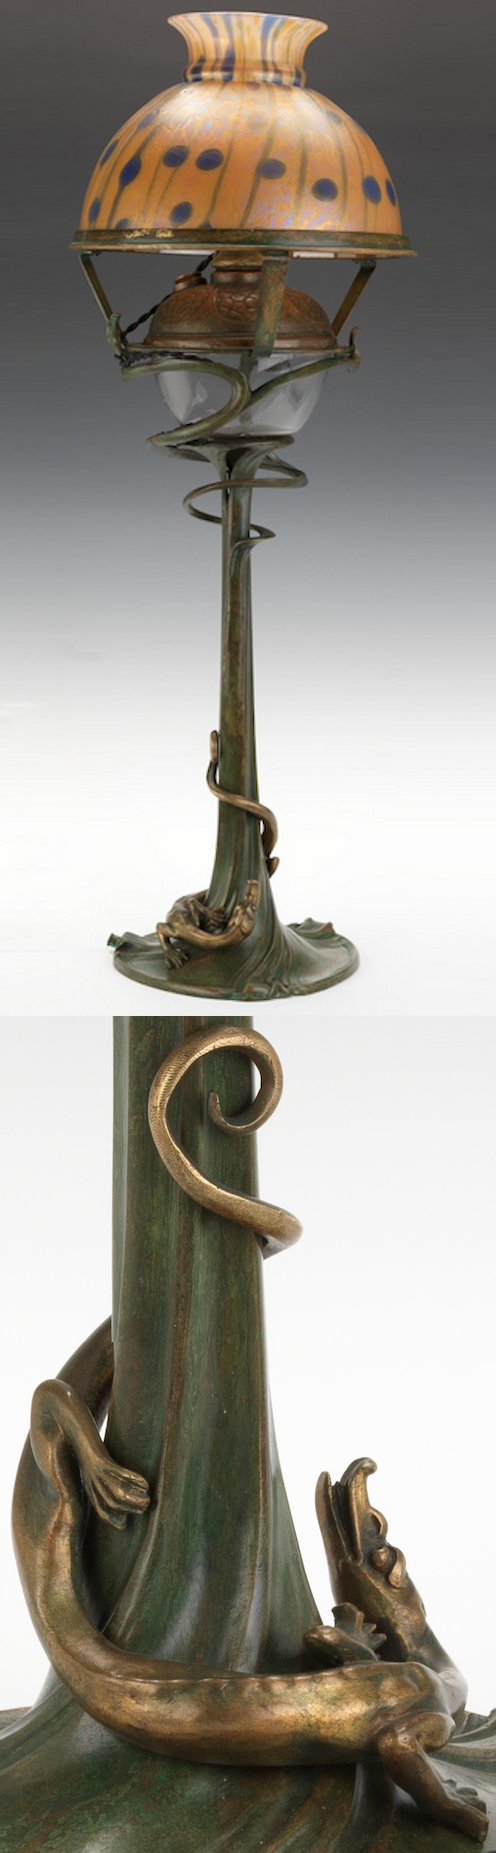 Art Nouveau Dragon Oil Lamp with Loetz Glass Shade, patinated bronze, base: 24 in. H, shade: 7-1/2 in. H x 9-7/8 in Diam.